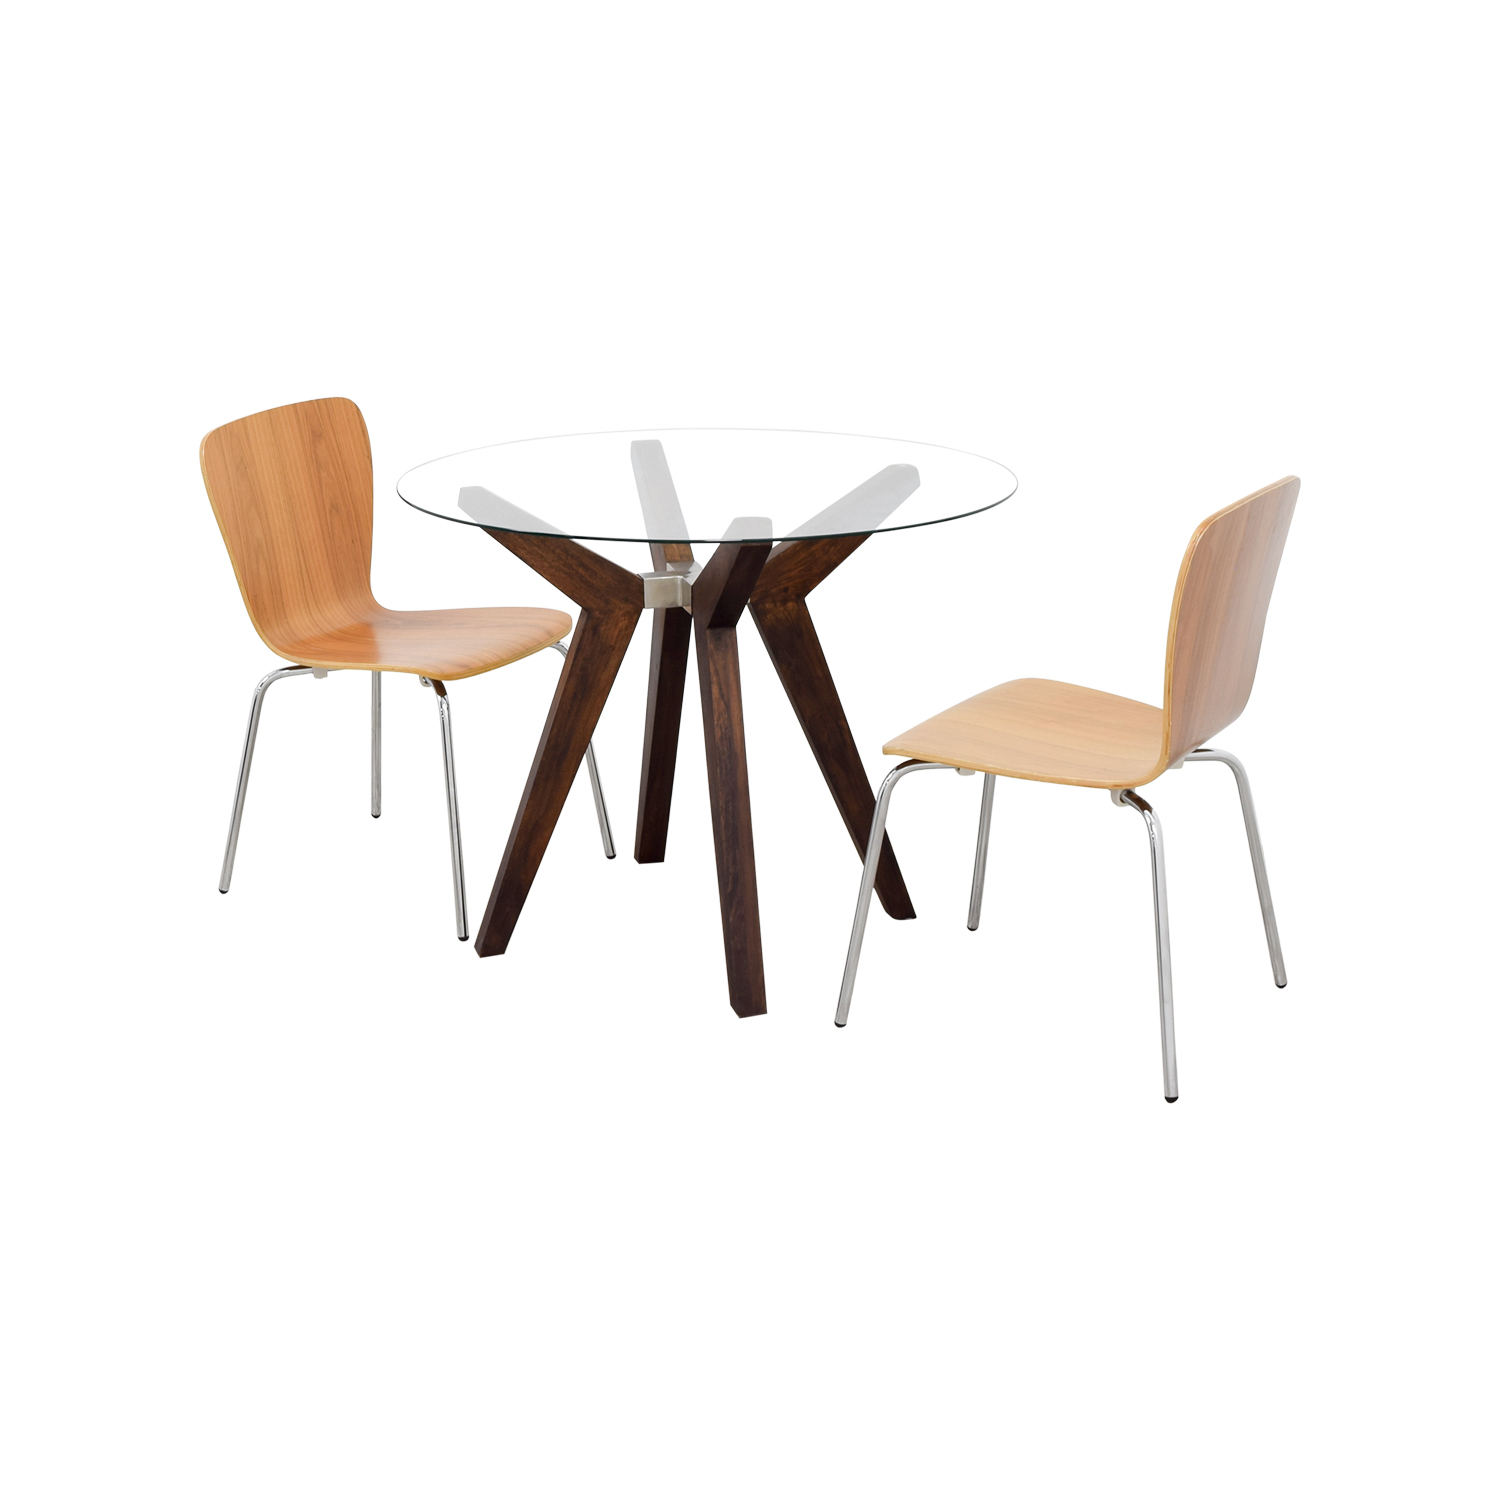 57% OFF Crate & Barrel Crate & Barrel Strut Round Dining Table